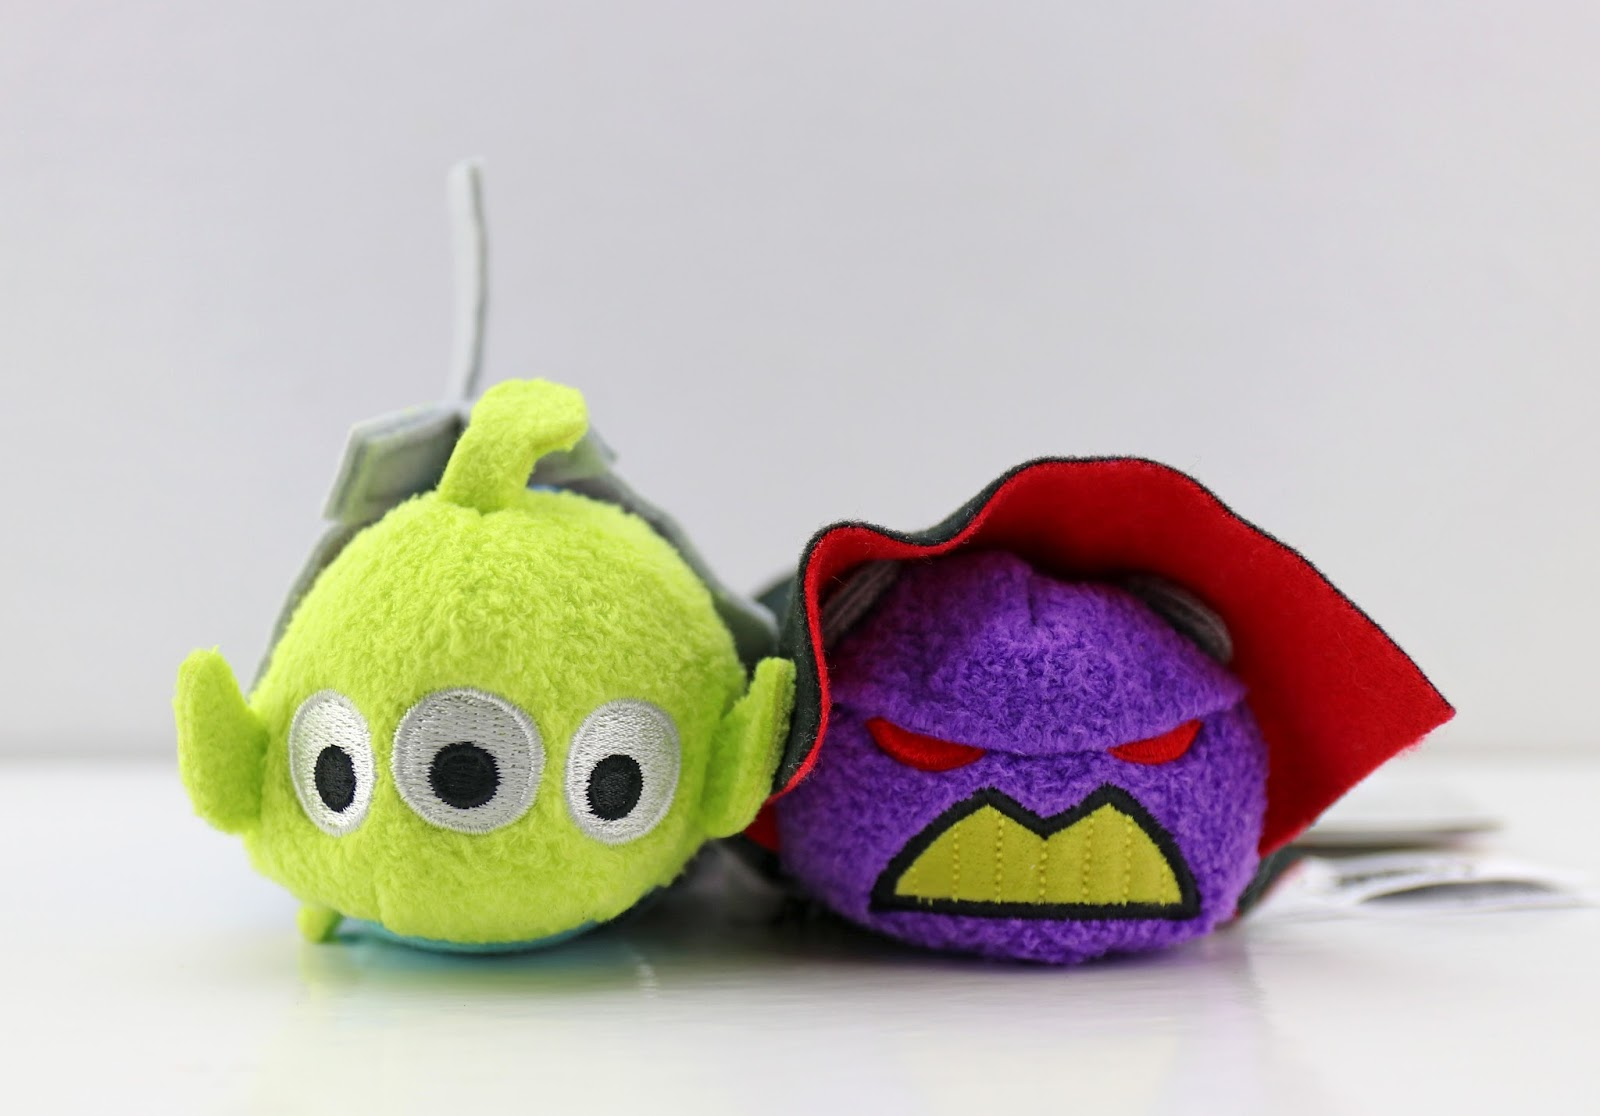 alien and zurg tomorrowland tsum tsums